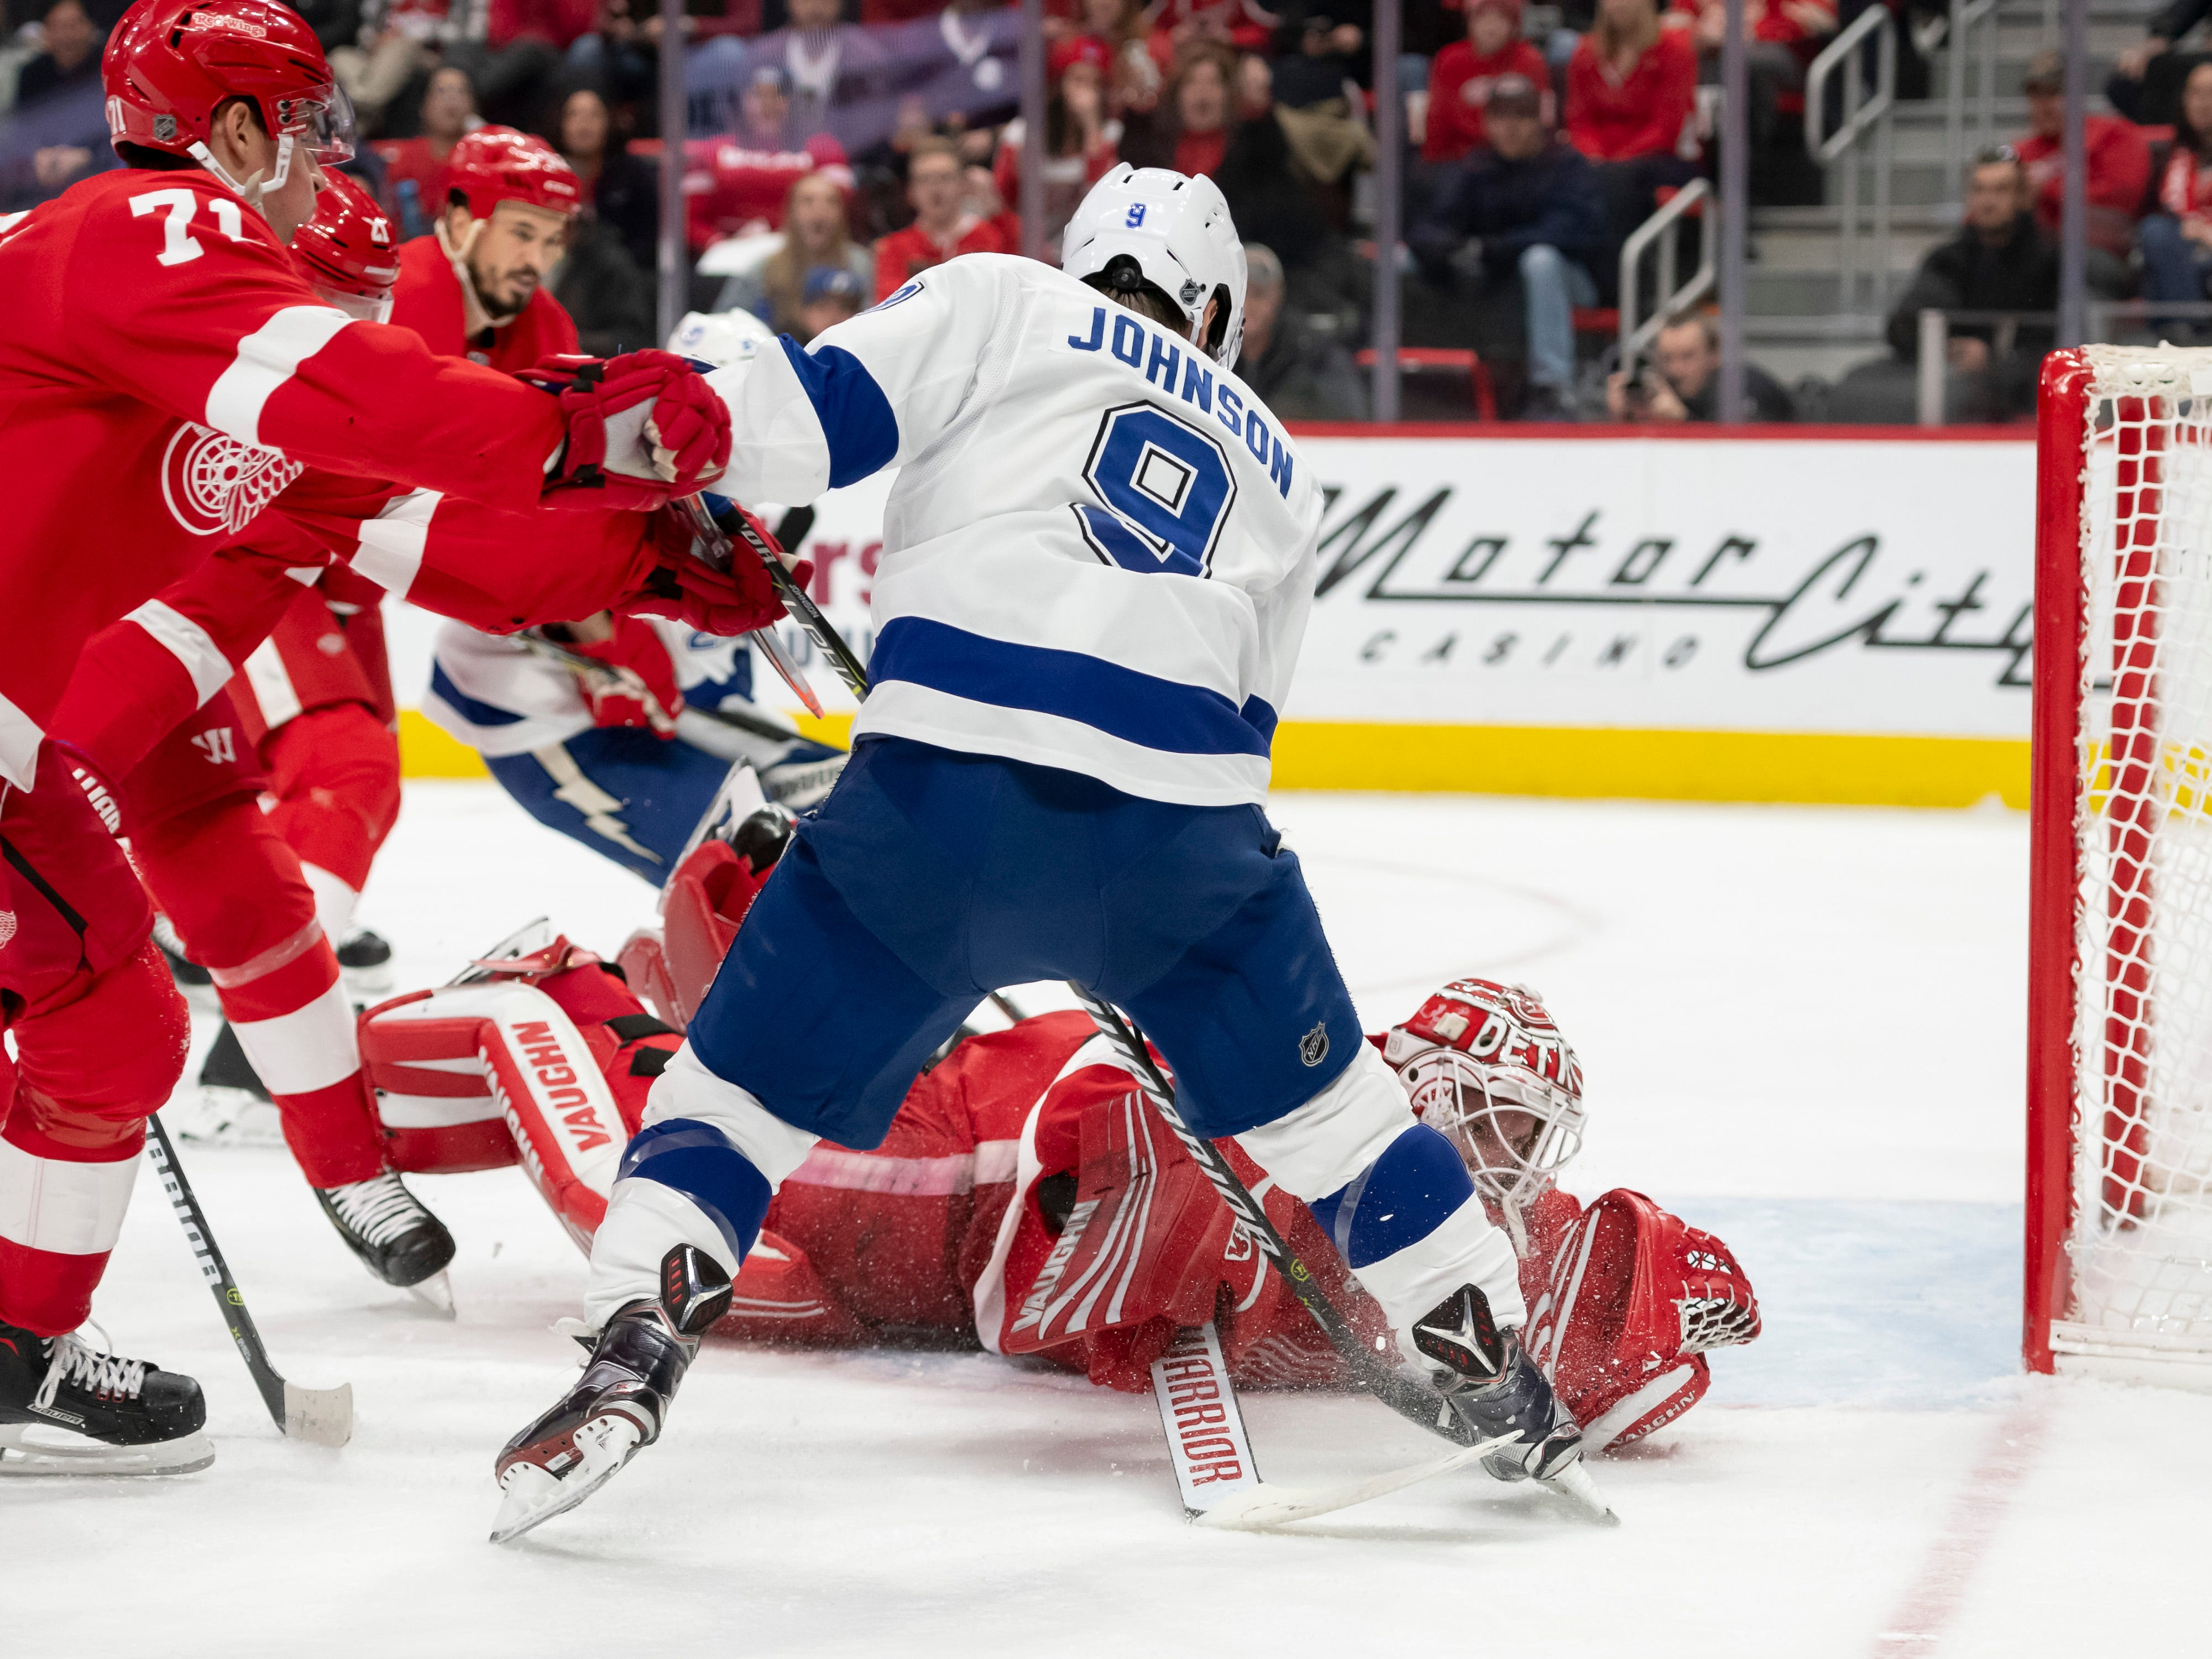 Tampa Bay center Tyler Johnson can't get the puck past Detroit goaltender Jimmy Howard in the second period.